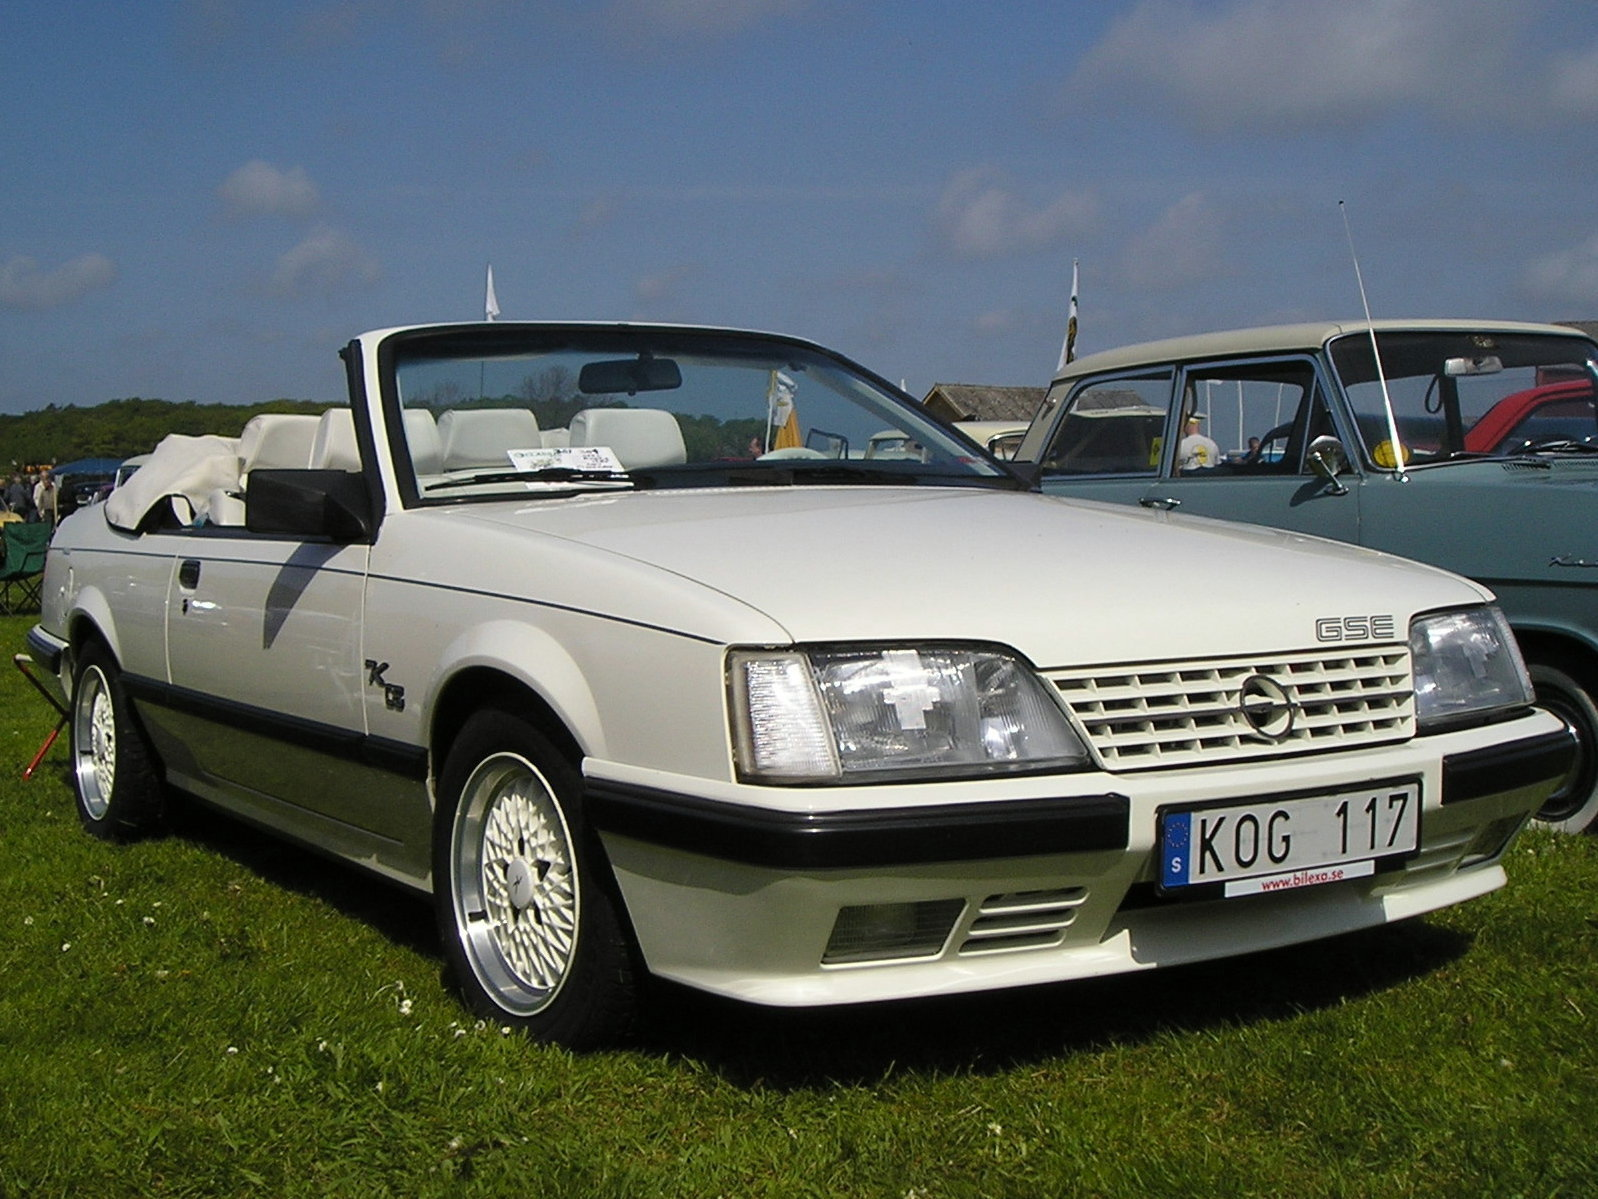 opel monza gse cabrio by keinath picture 2 reviews news specs buy car. Black Bedroom Furniture Sets. Home Design Ideas